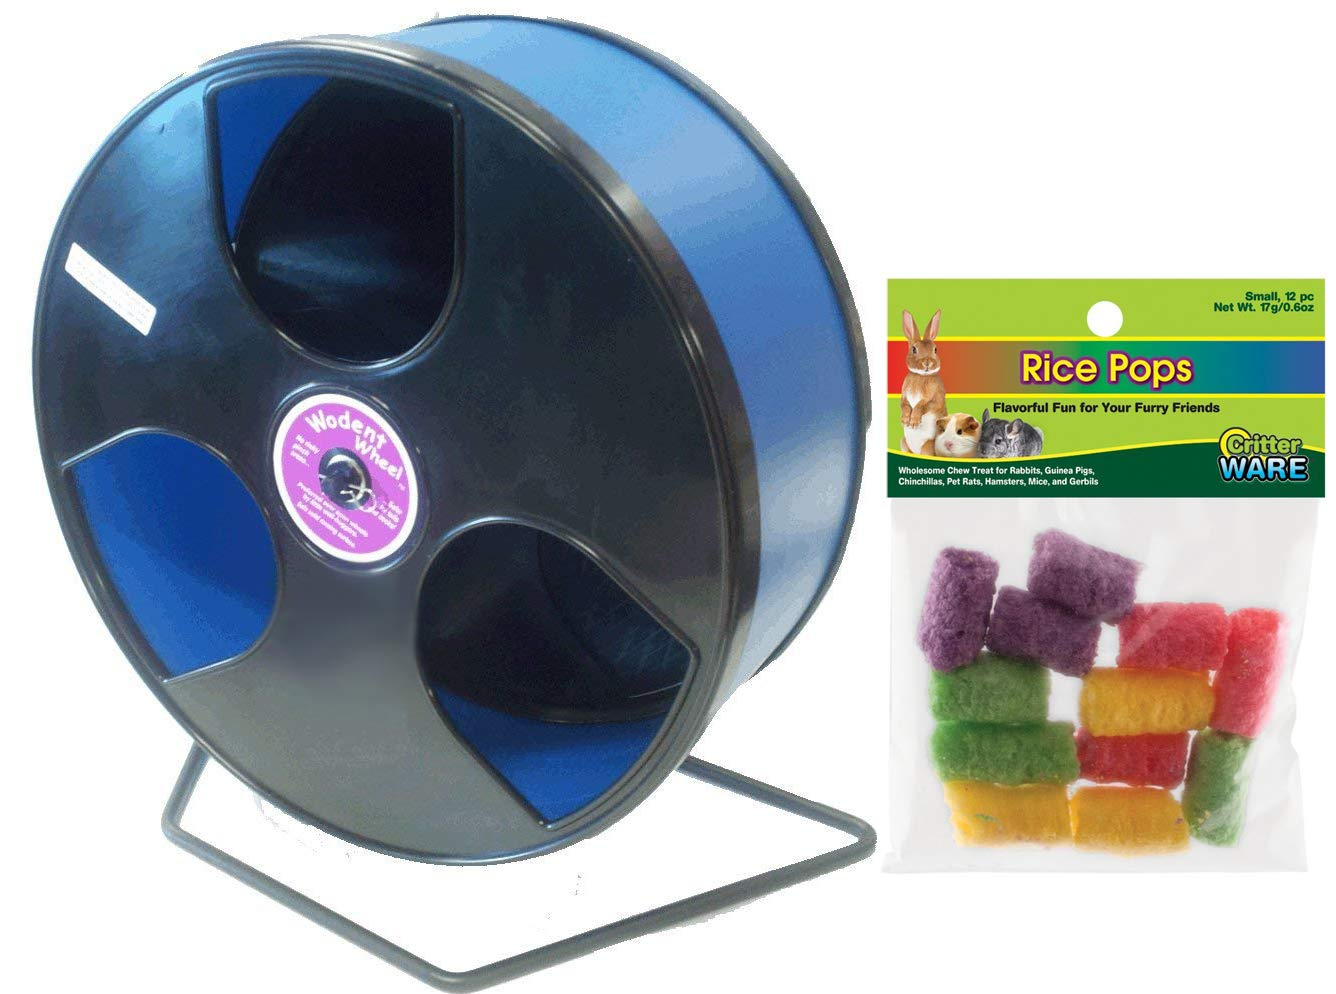 Wodent Wheel 12 Inch: Transoniq Wobust Wodent Wheel Bundle with Ware Rice Pops Treat: Black with Blue Track by CritterTyme